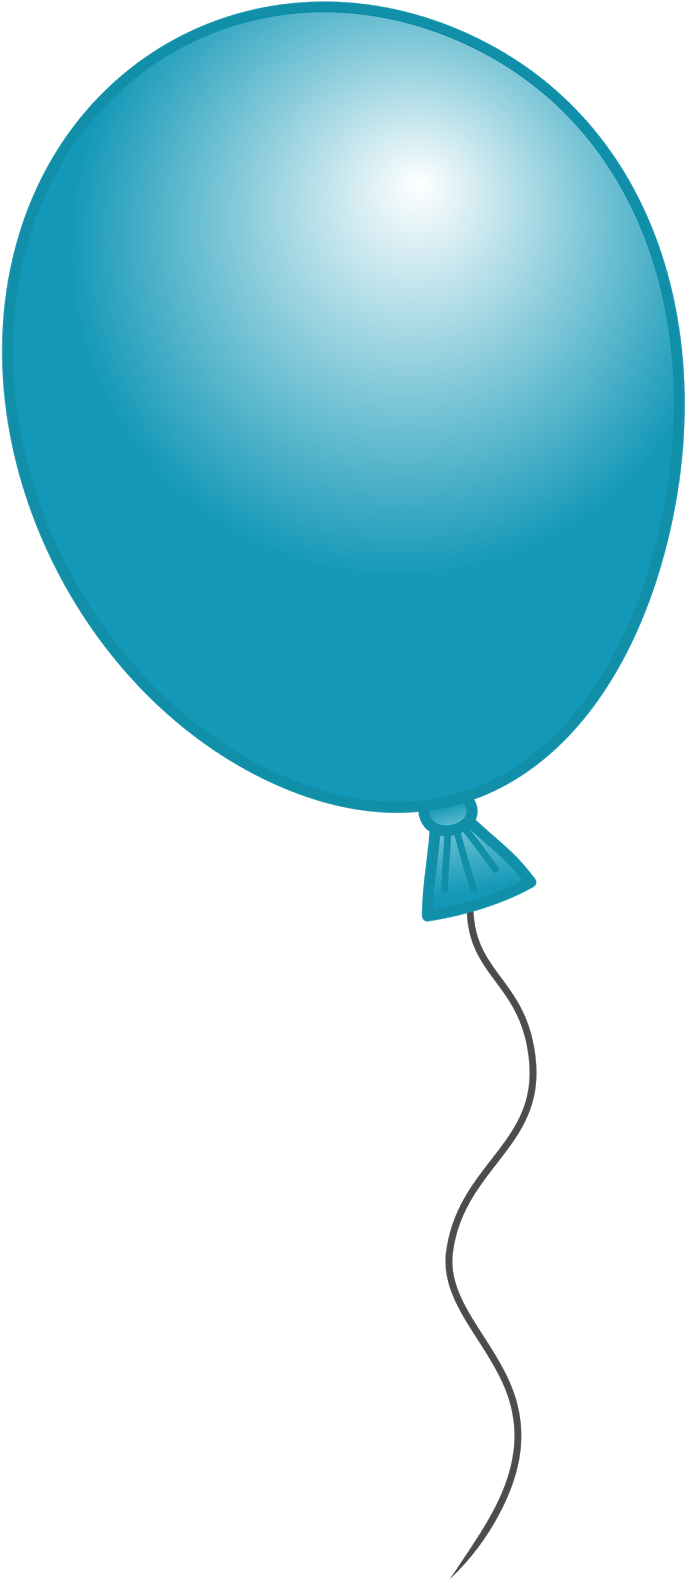 Black Balloons Cliparts Free Download Clip Art Free.